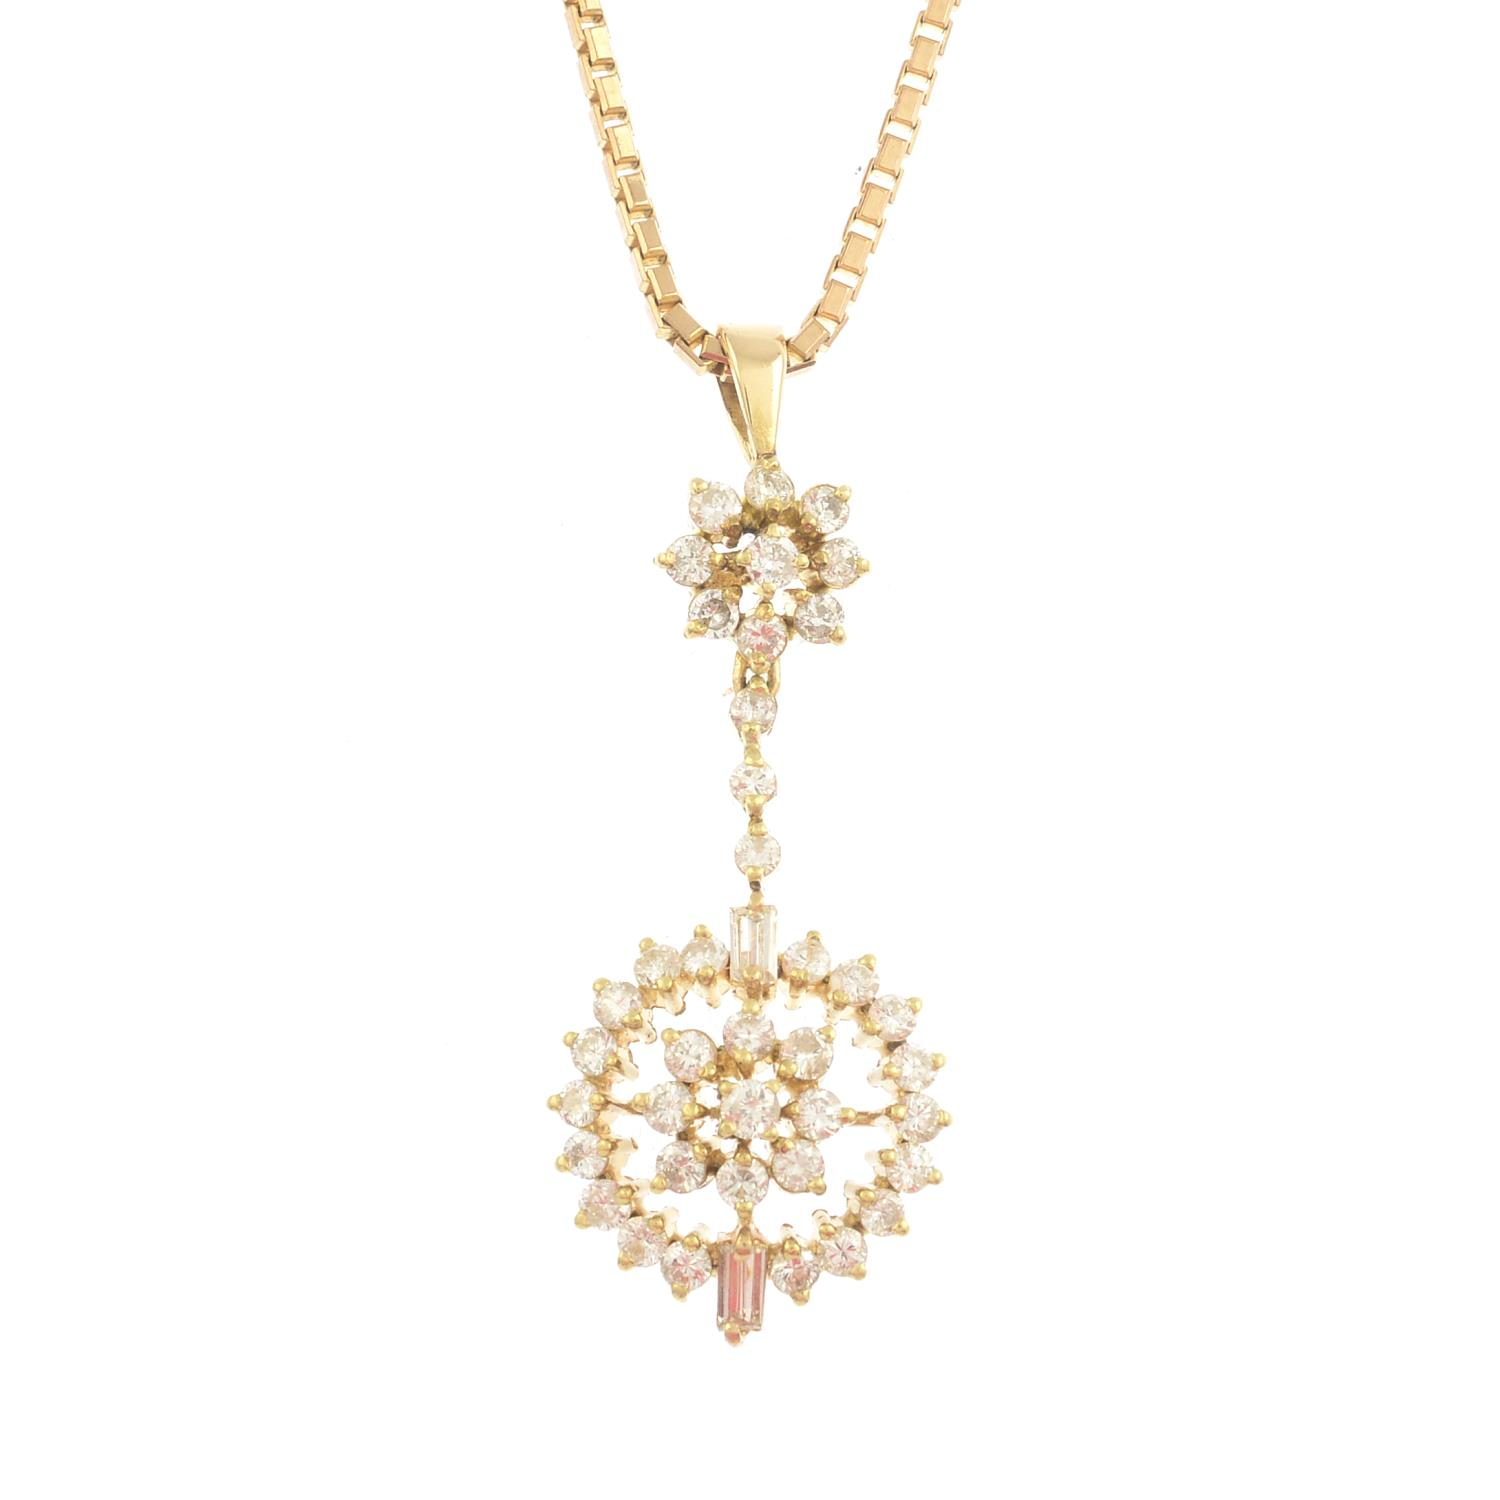 Lot 40 - A diamond pendant, suspended from a 9ct gold box-link chain.Estimated total diamond weight 0.50ct.